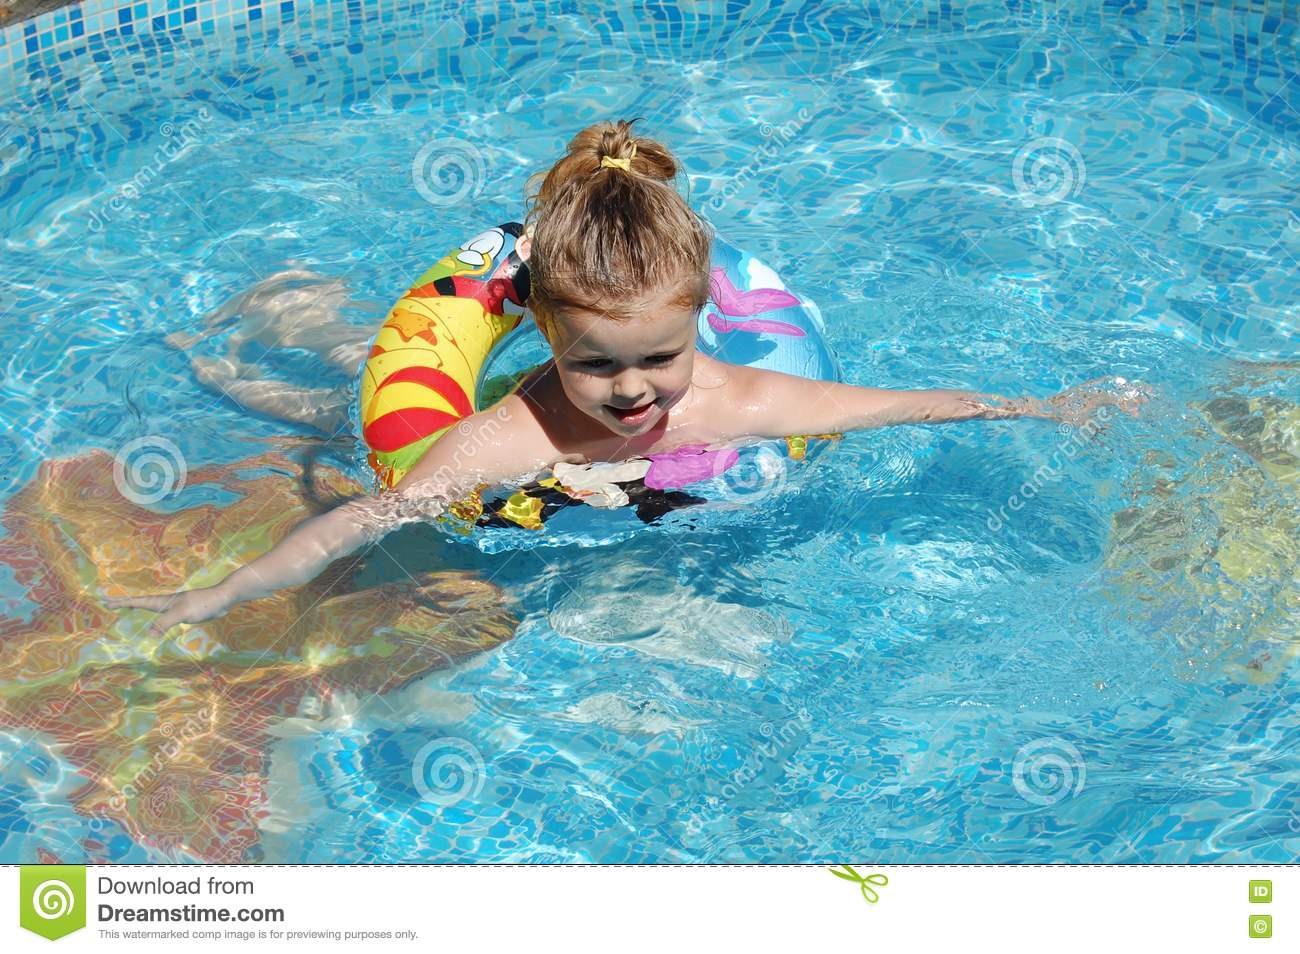 Royalty Free Stock Images A Girl In A Swimming Pool Image 9882079